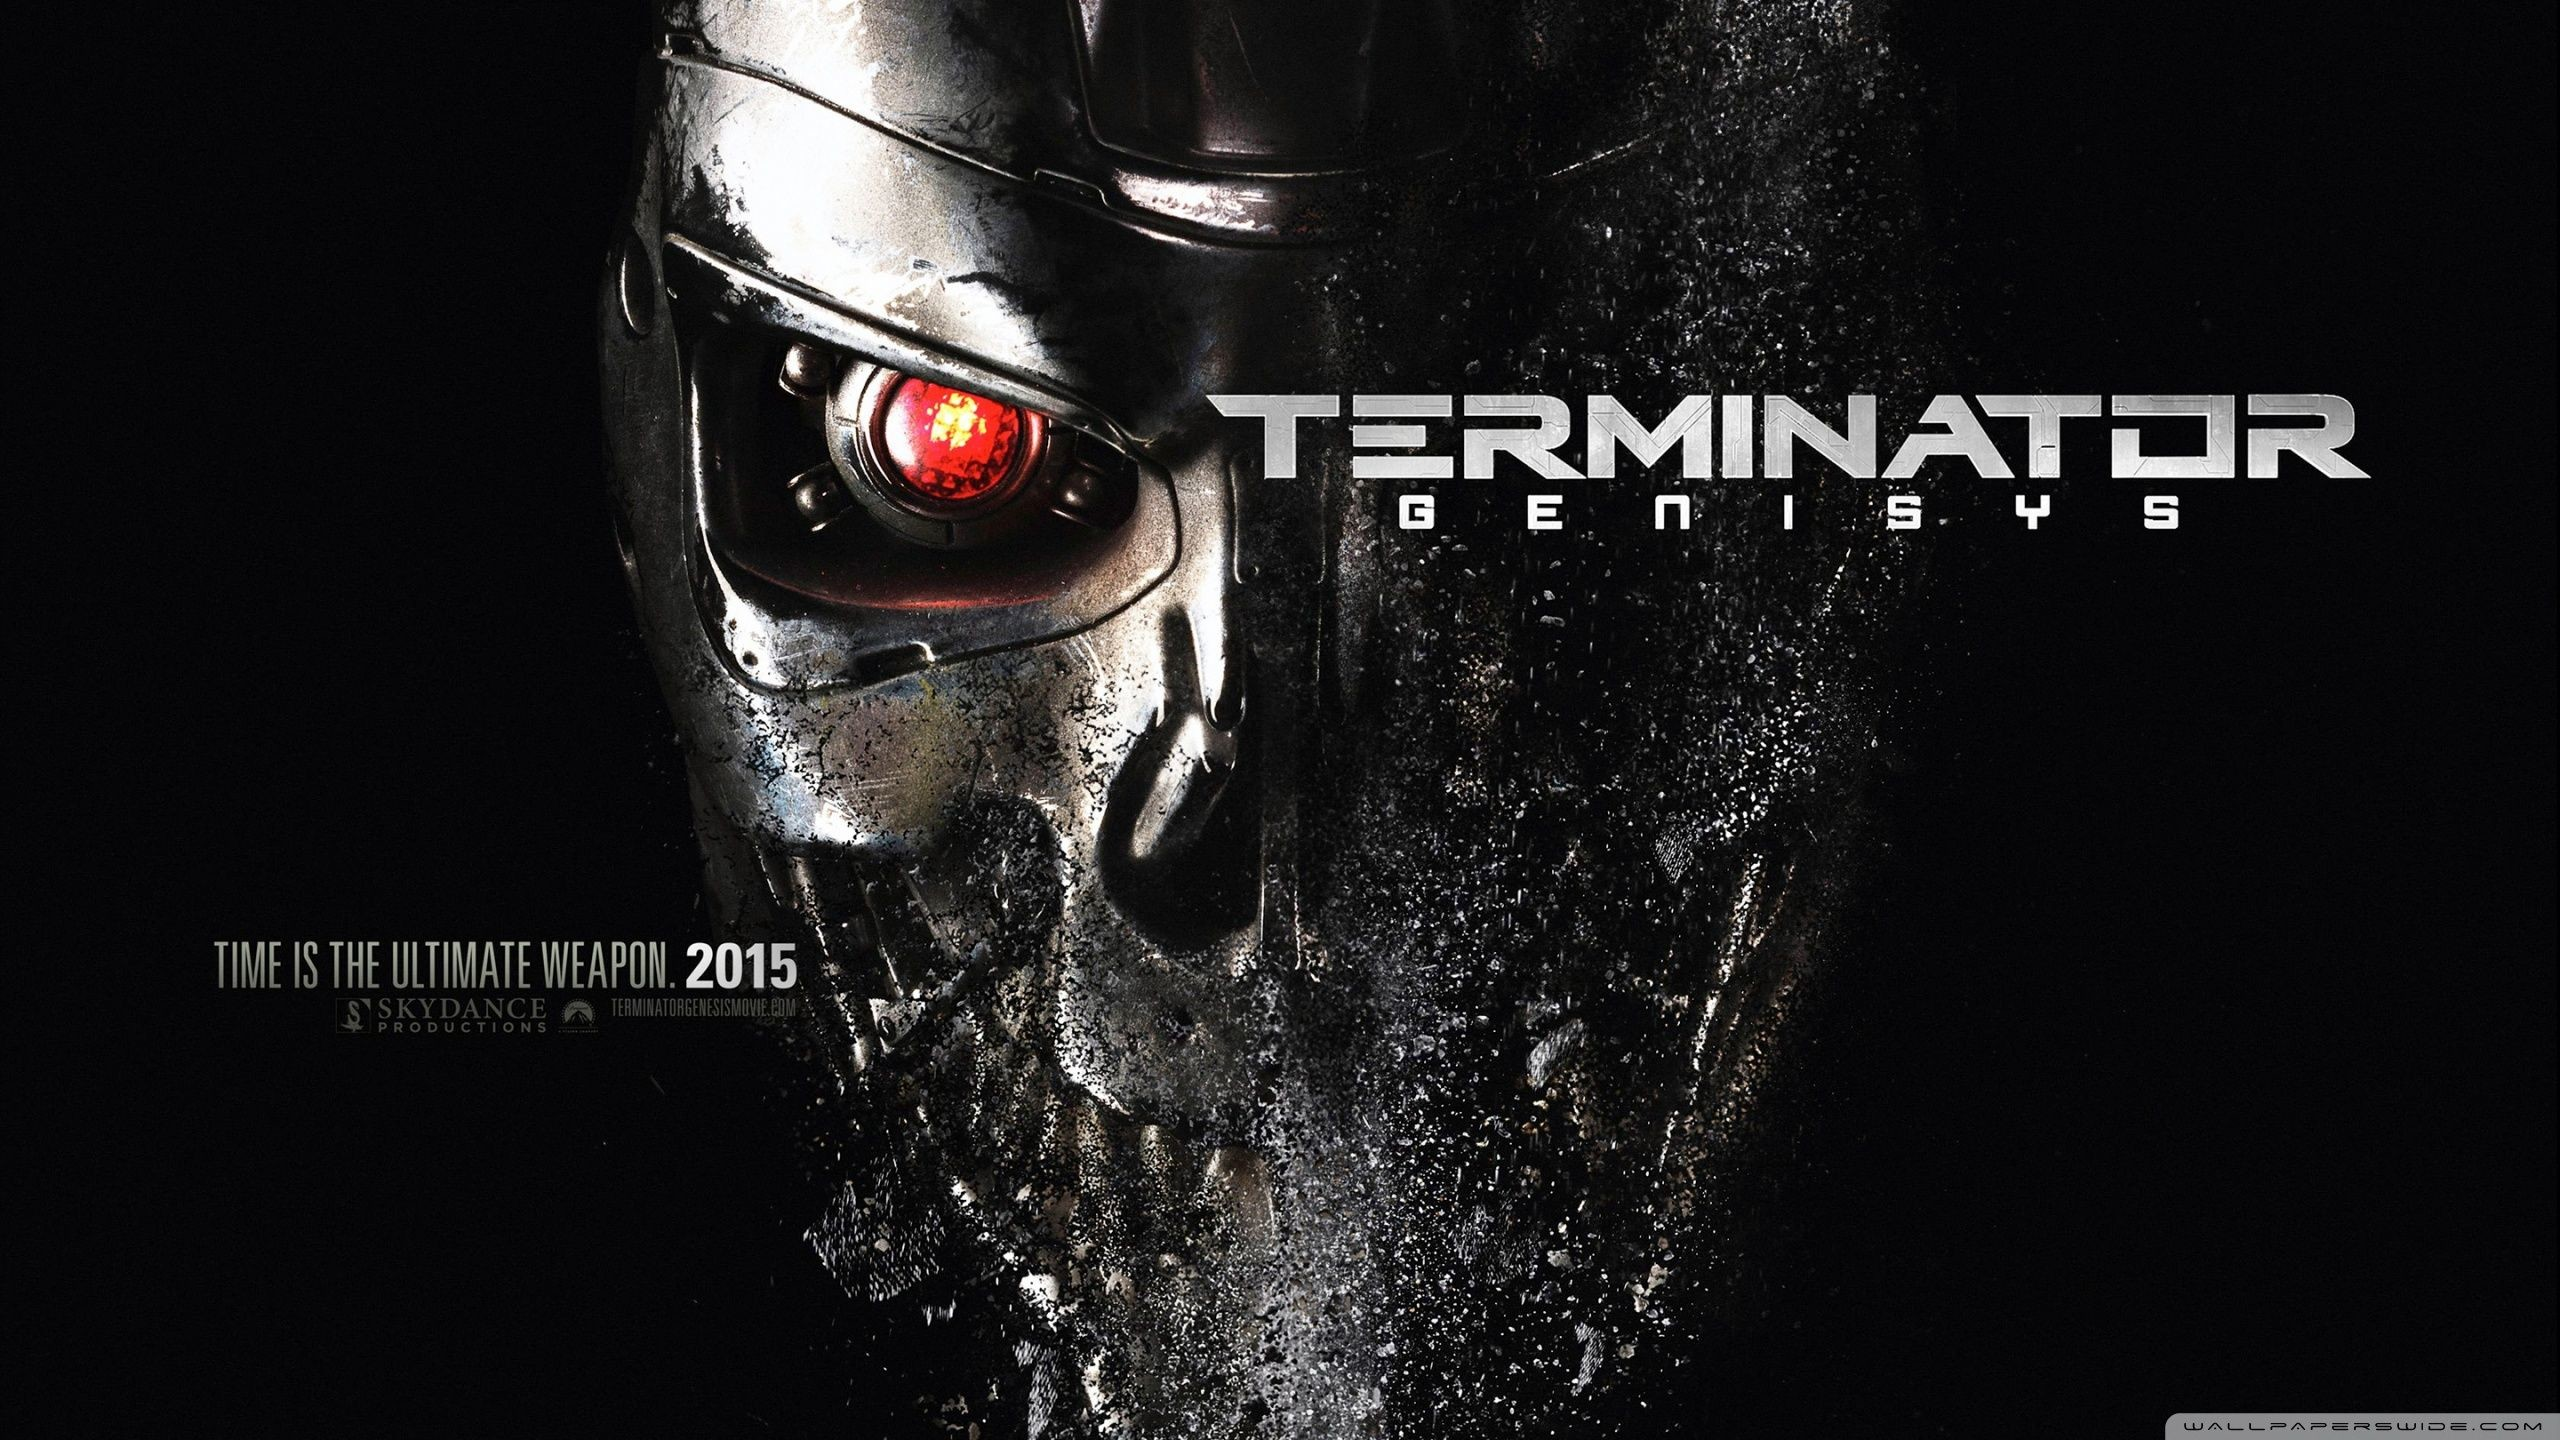 2560x1440 Terminator Genisys HD desktop wallpaper High Definition Mobile